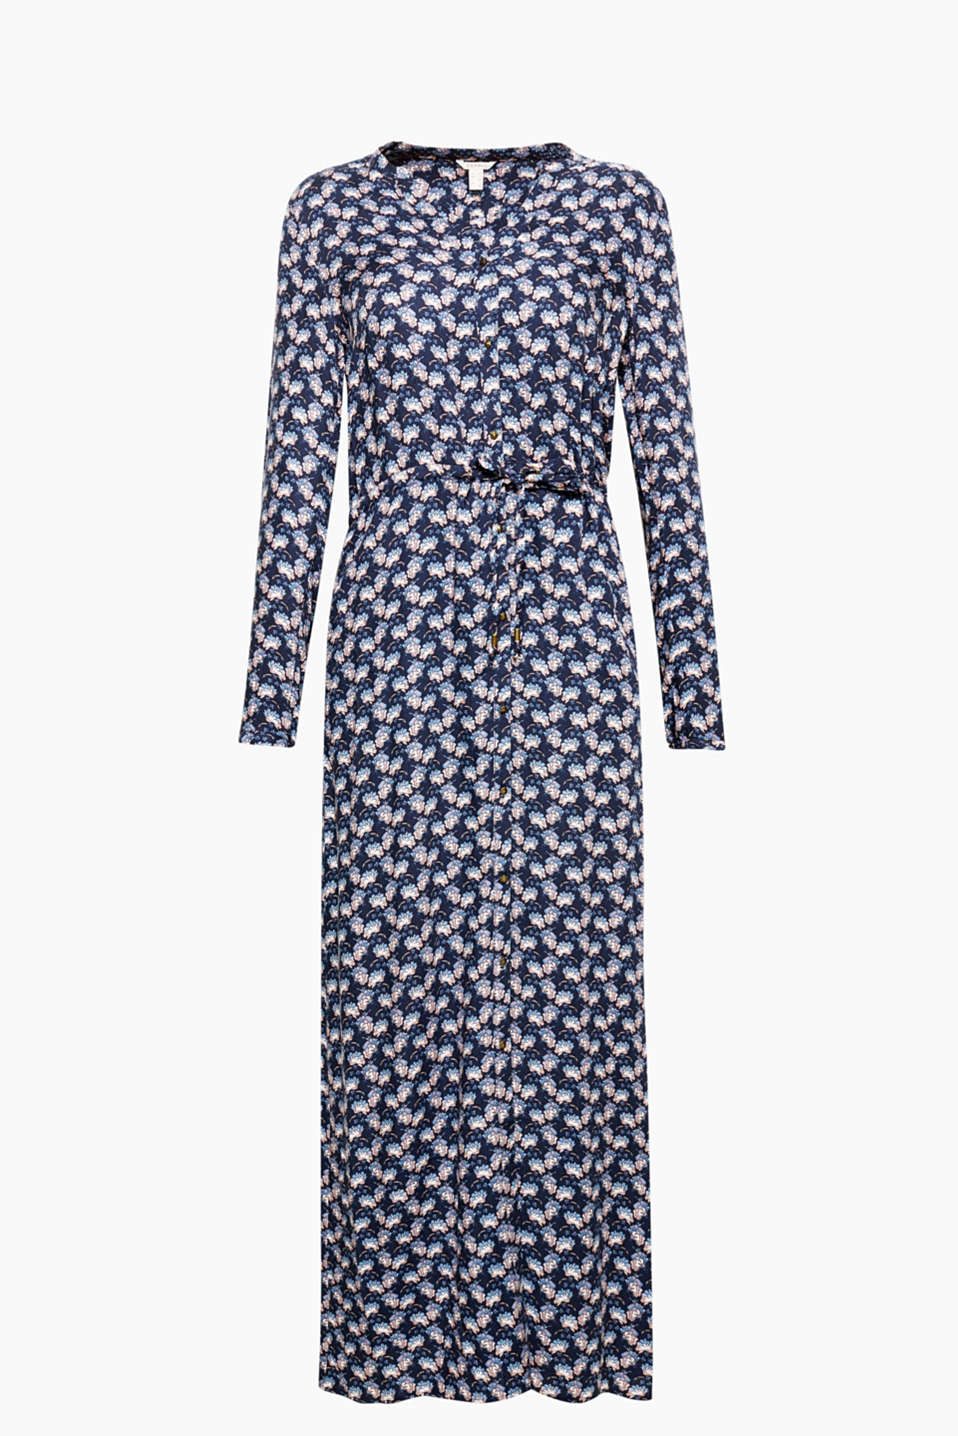 Feminine style can be so casual: maxi dress with a Henley neckline, full-length button placket and floral print